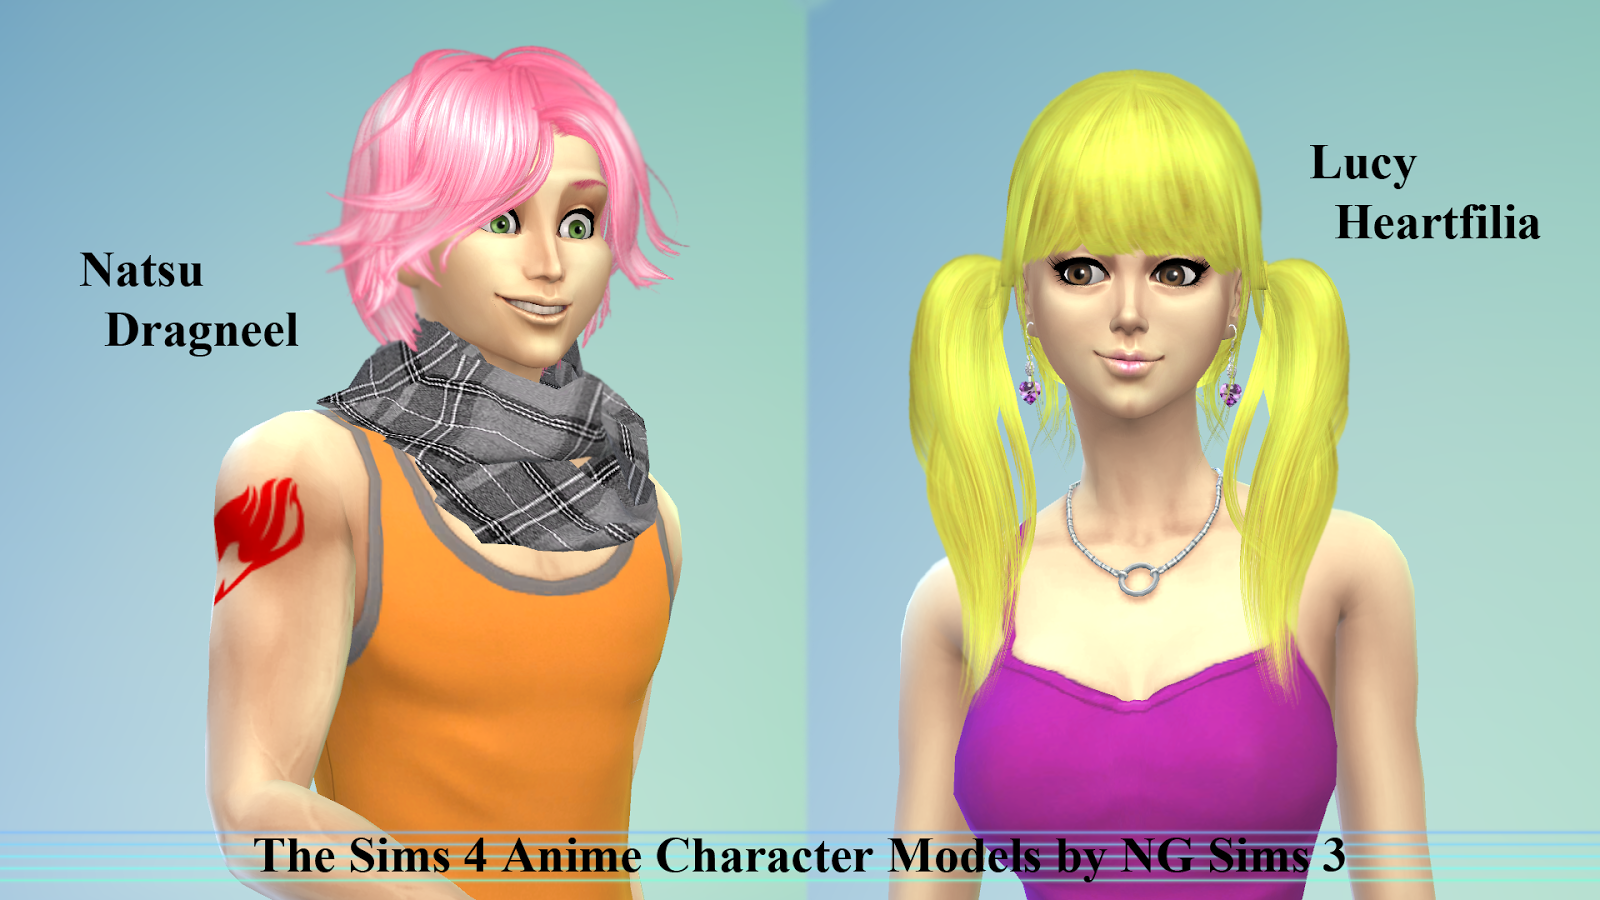 Sims 4 Anime Characters Mod : Sims cc anime characters newhairstylesformen